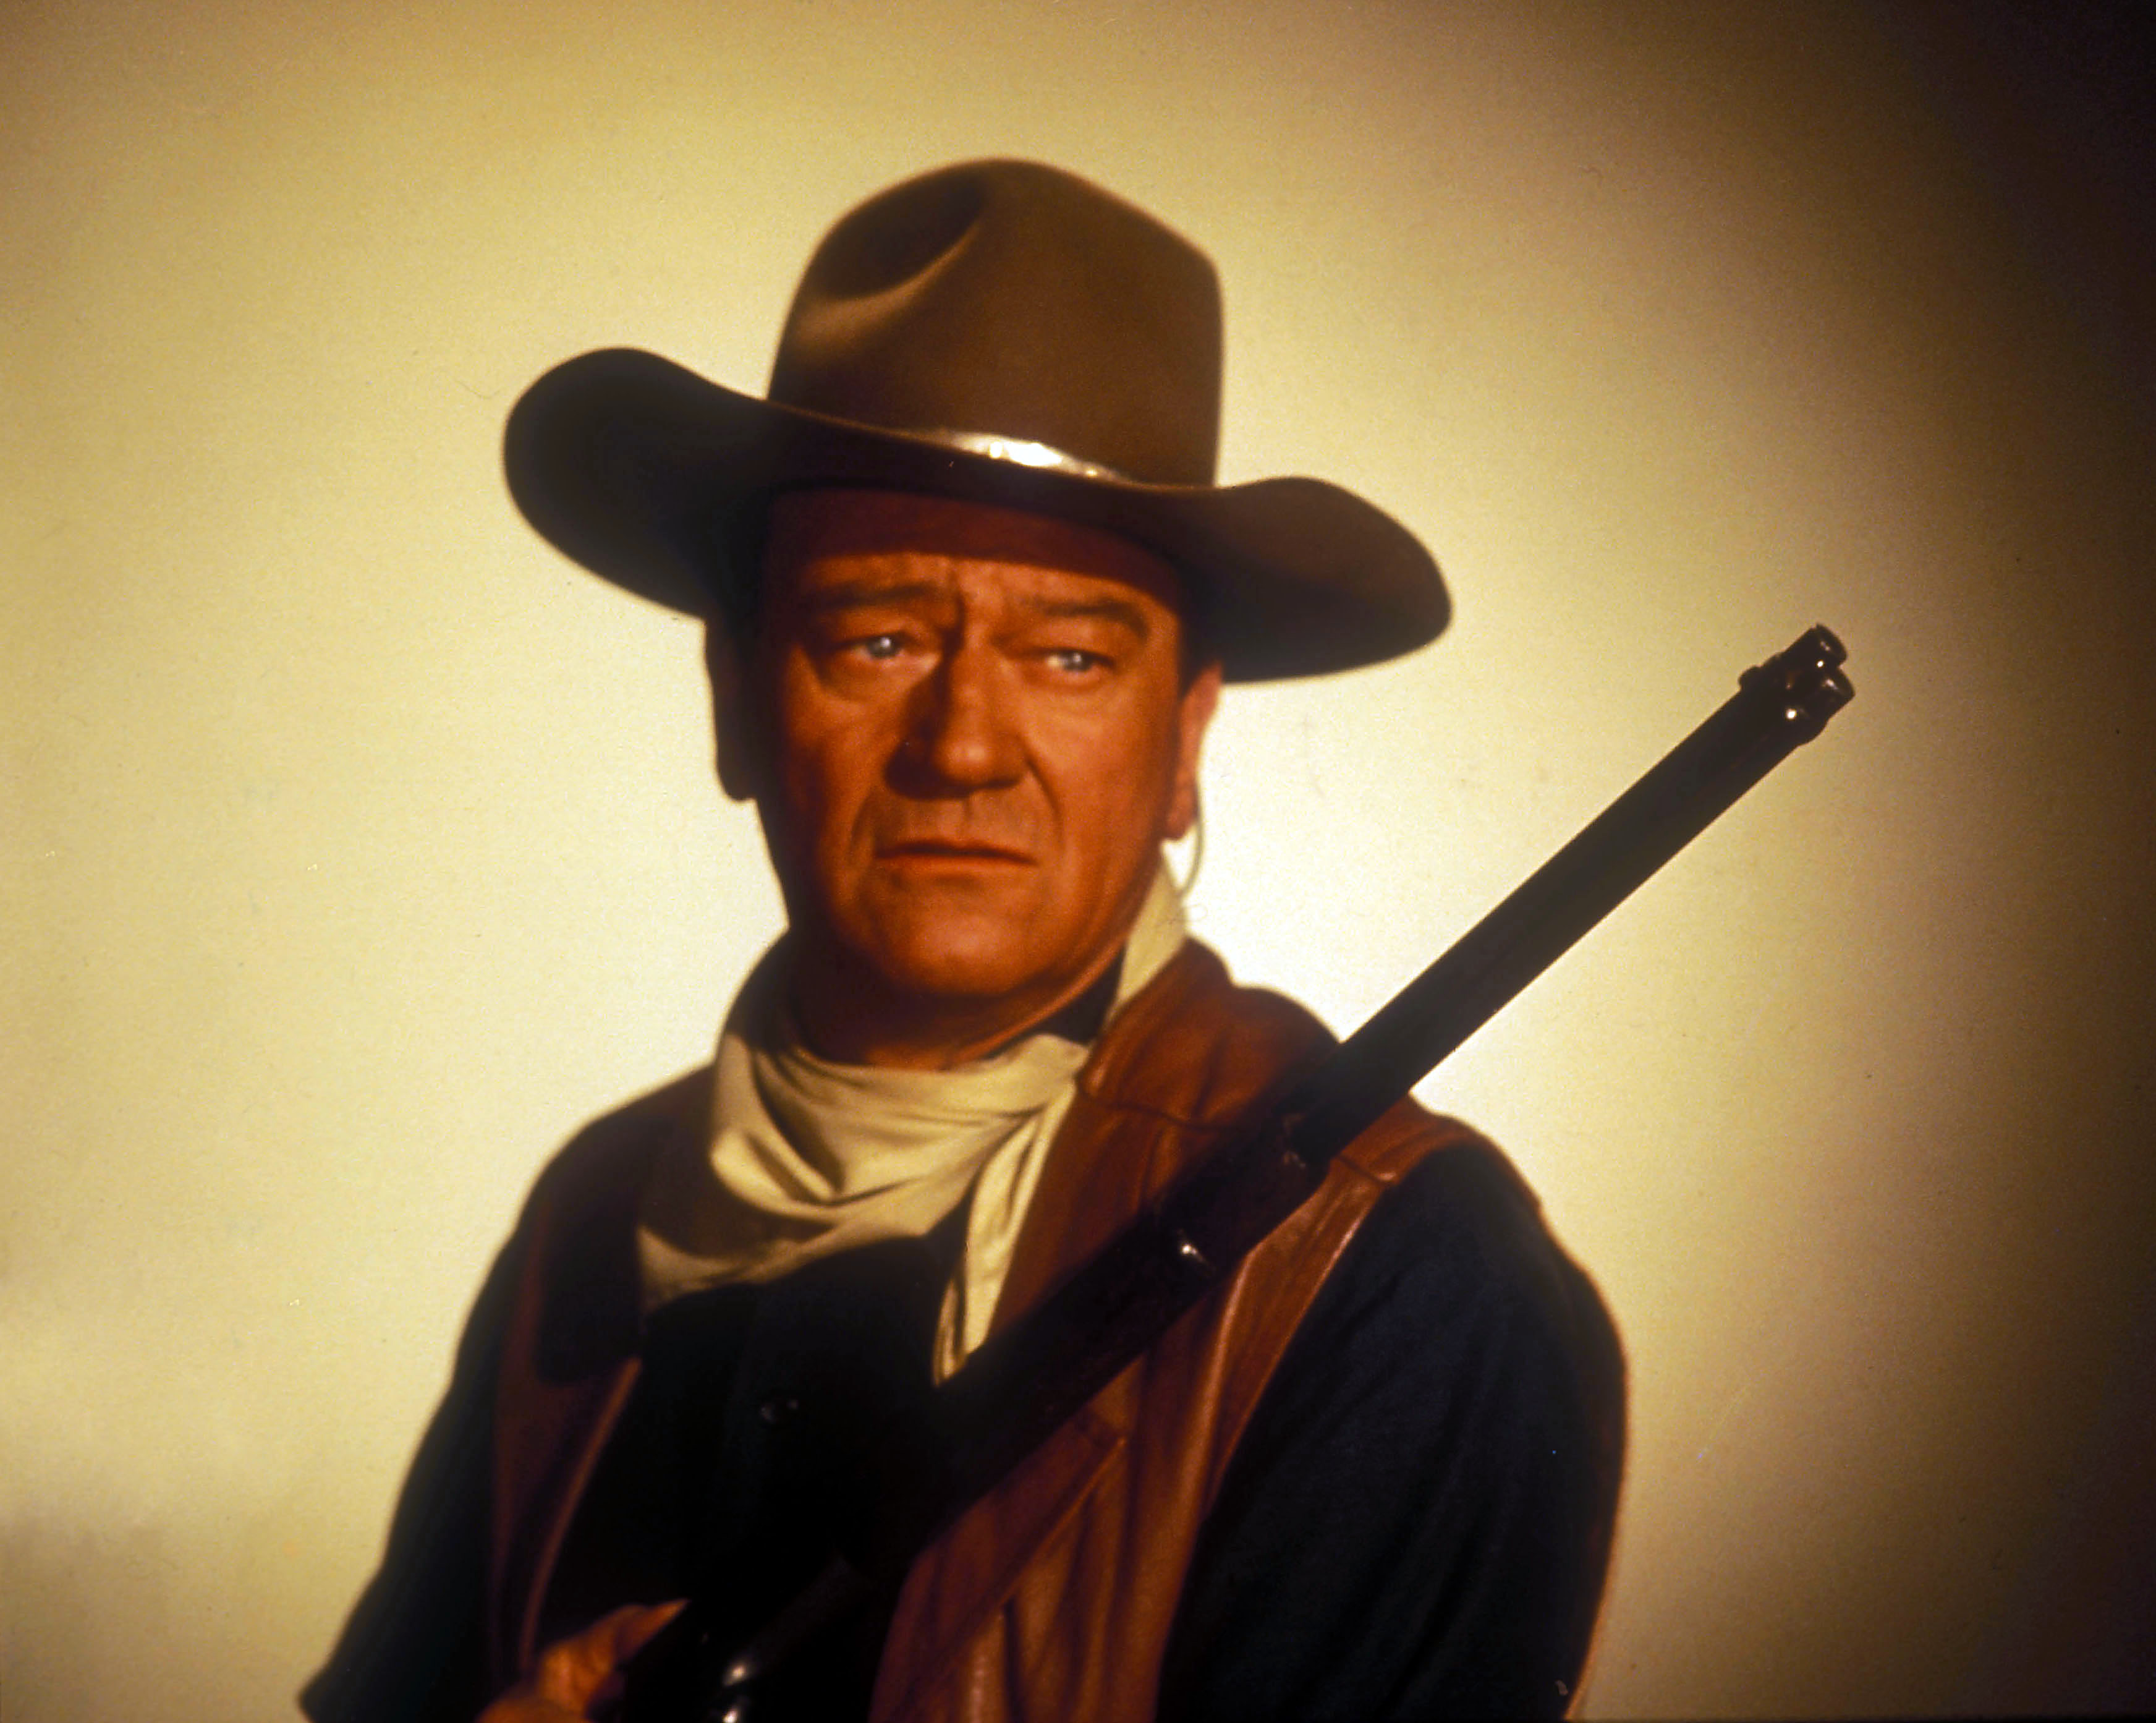 rollingstone.com - Daniel Kreps - USC to Remove John Wayne Exhibit After Students Protest Actor's Racist Remarks